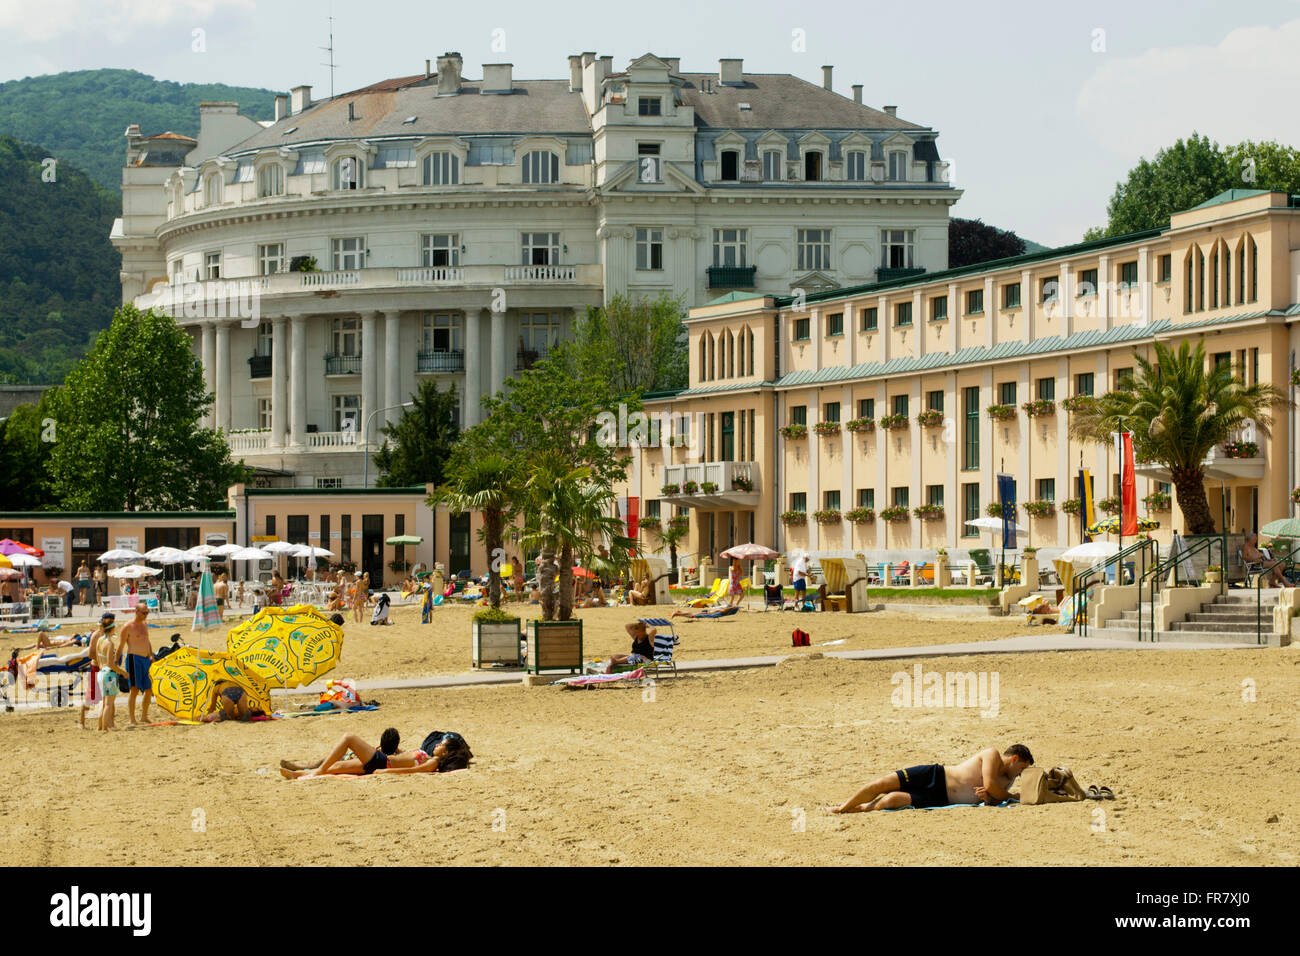 sterreich nieder sterreich baden bei wien sommer im strandbad stock photo 100363480 alamy. Black Bedroom Furniture Sets. Home Design Ideas